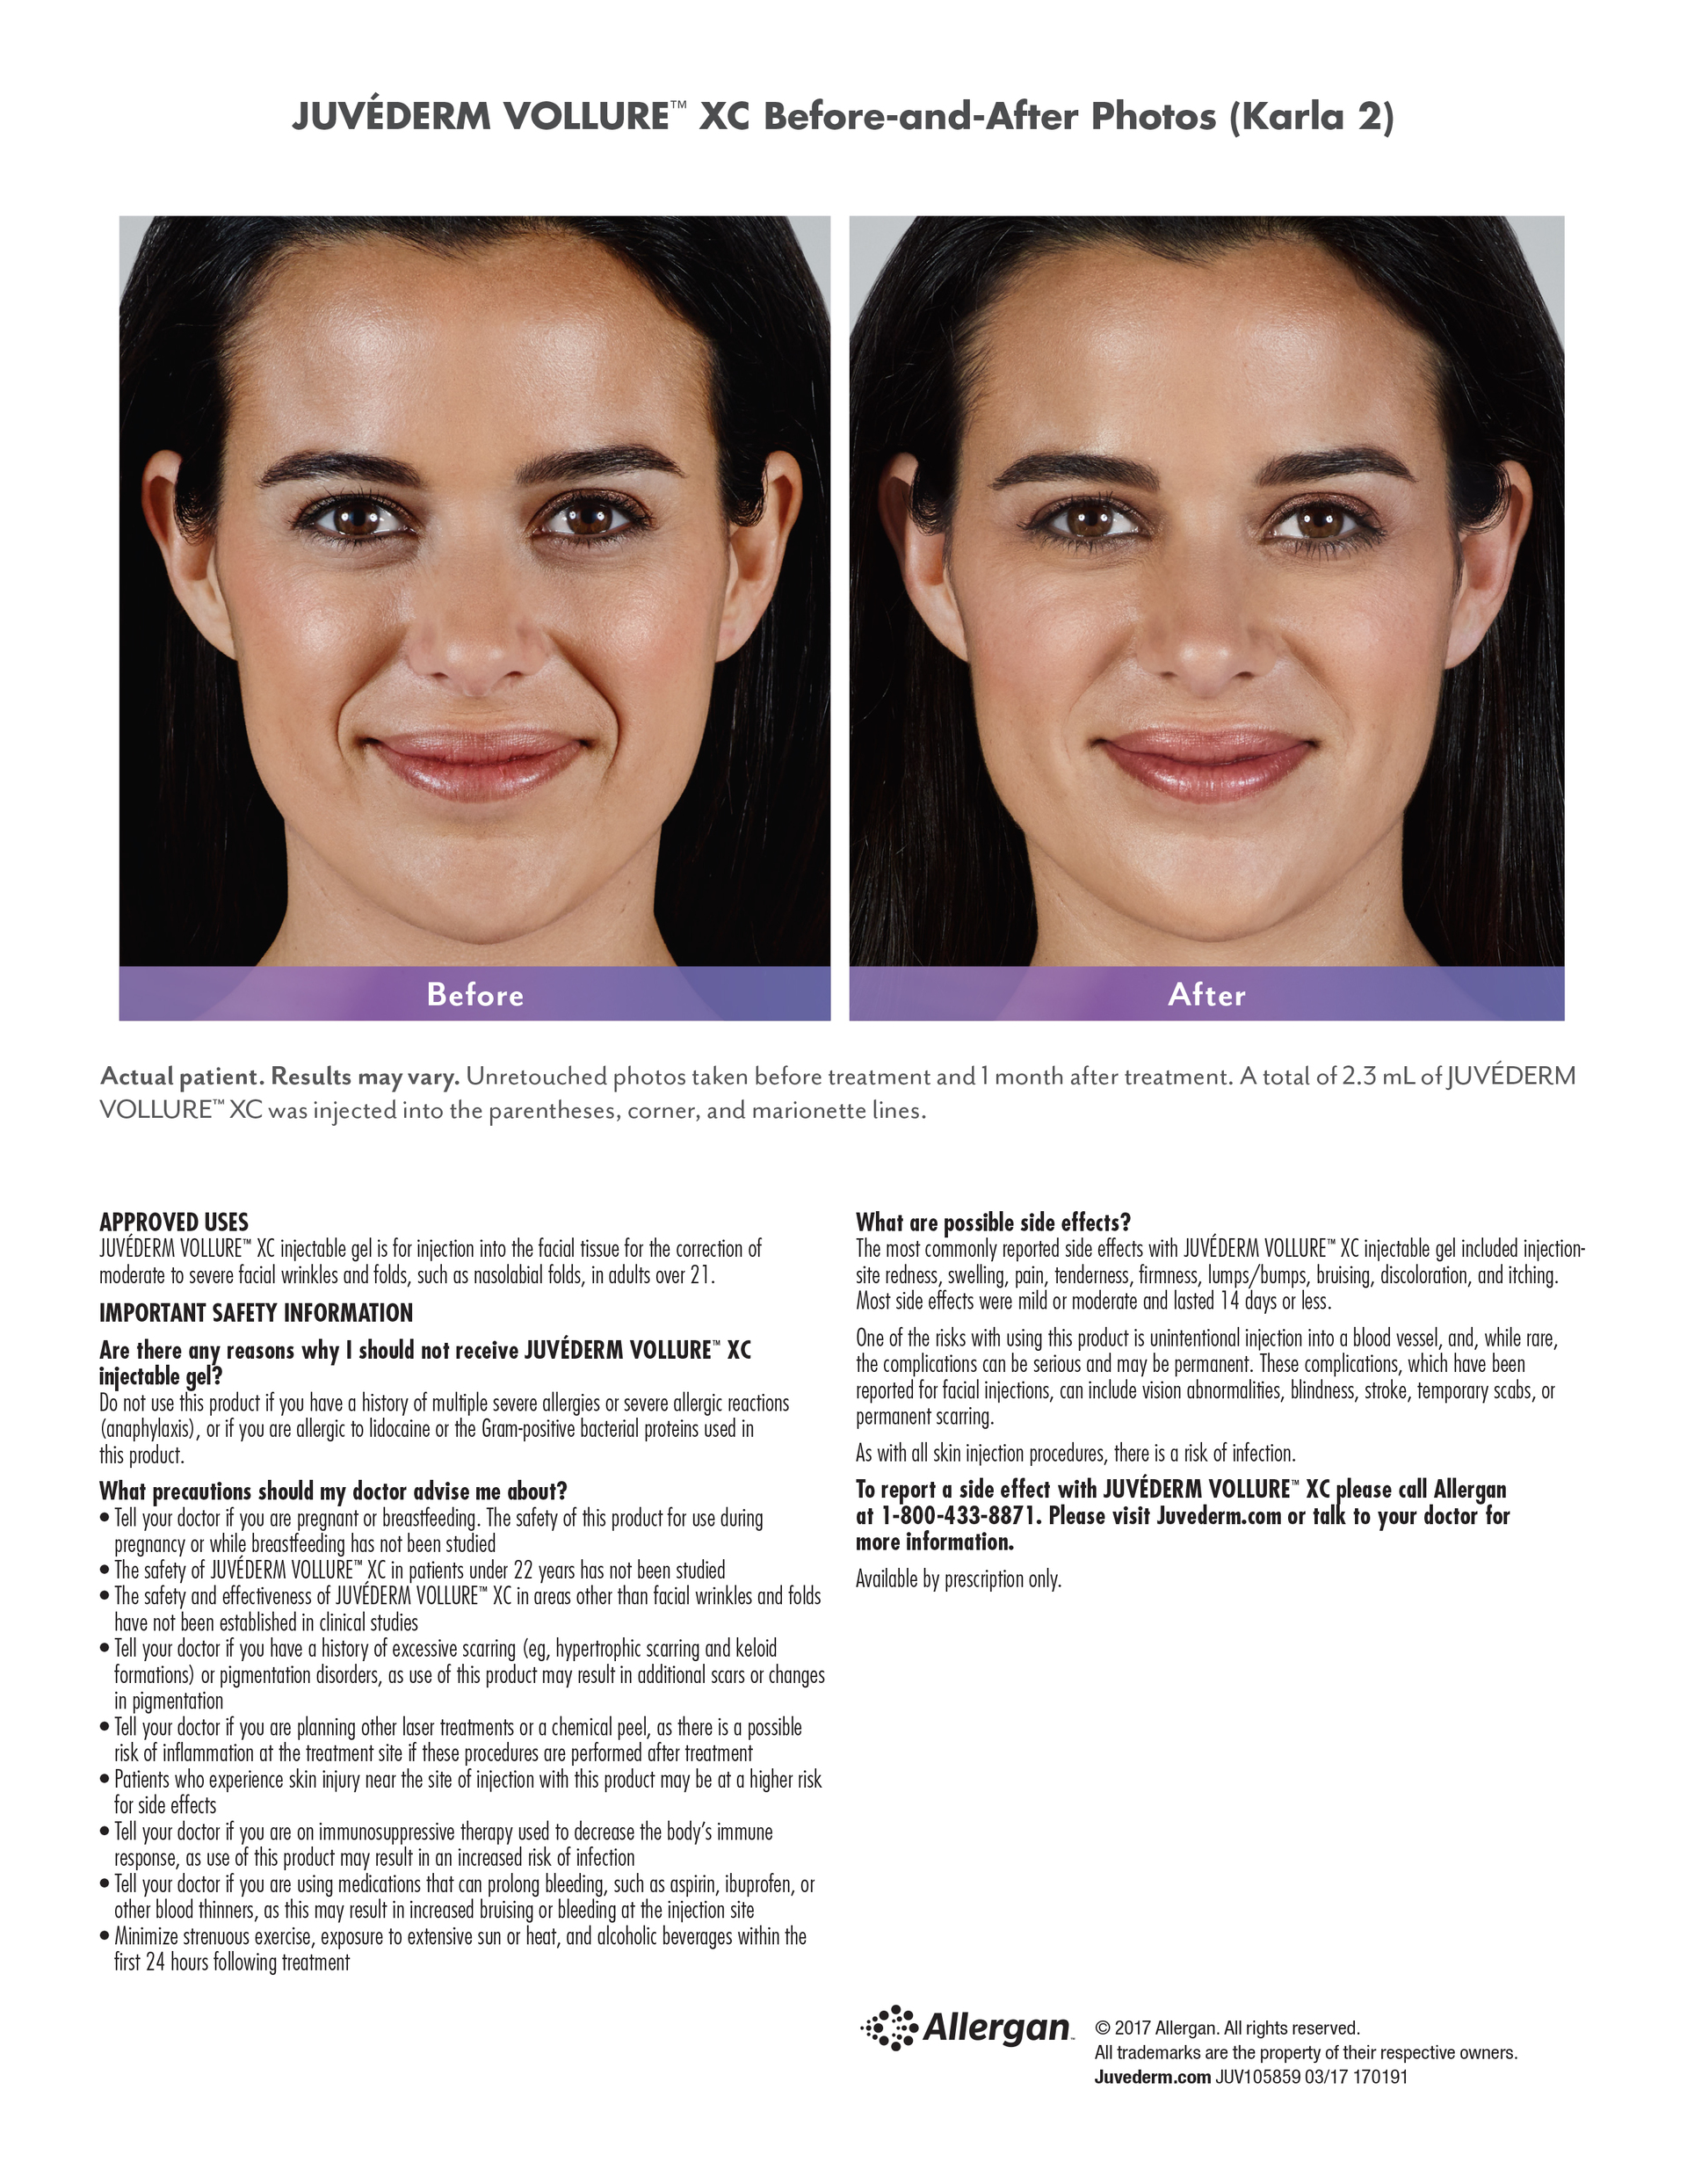 Juvederm Vollure XC FDA Approved Skin Filler Portland, Maine